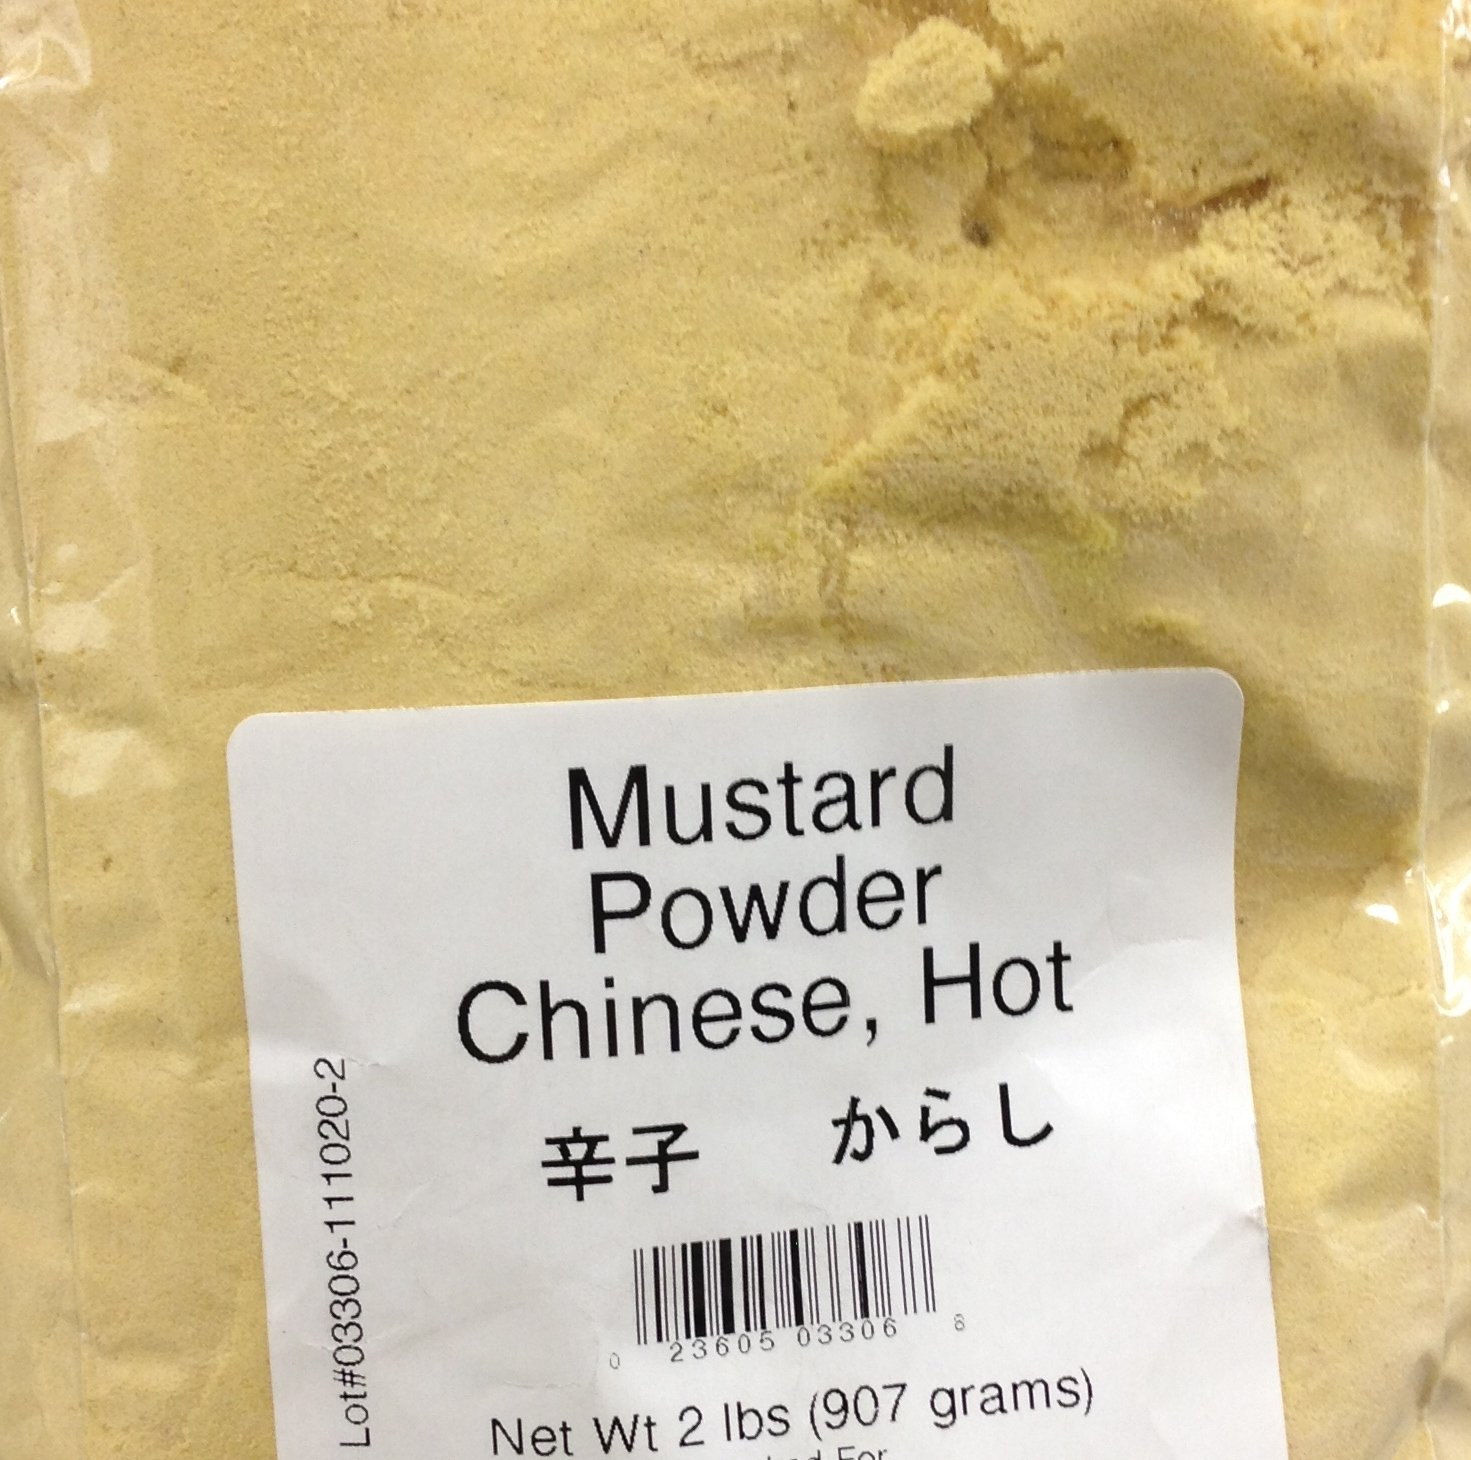 32oz Mustard Powder Chinese Hot (2 Pounds Total)